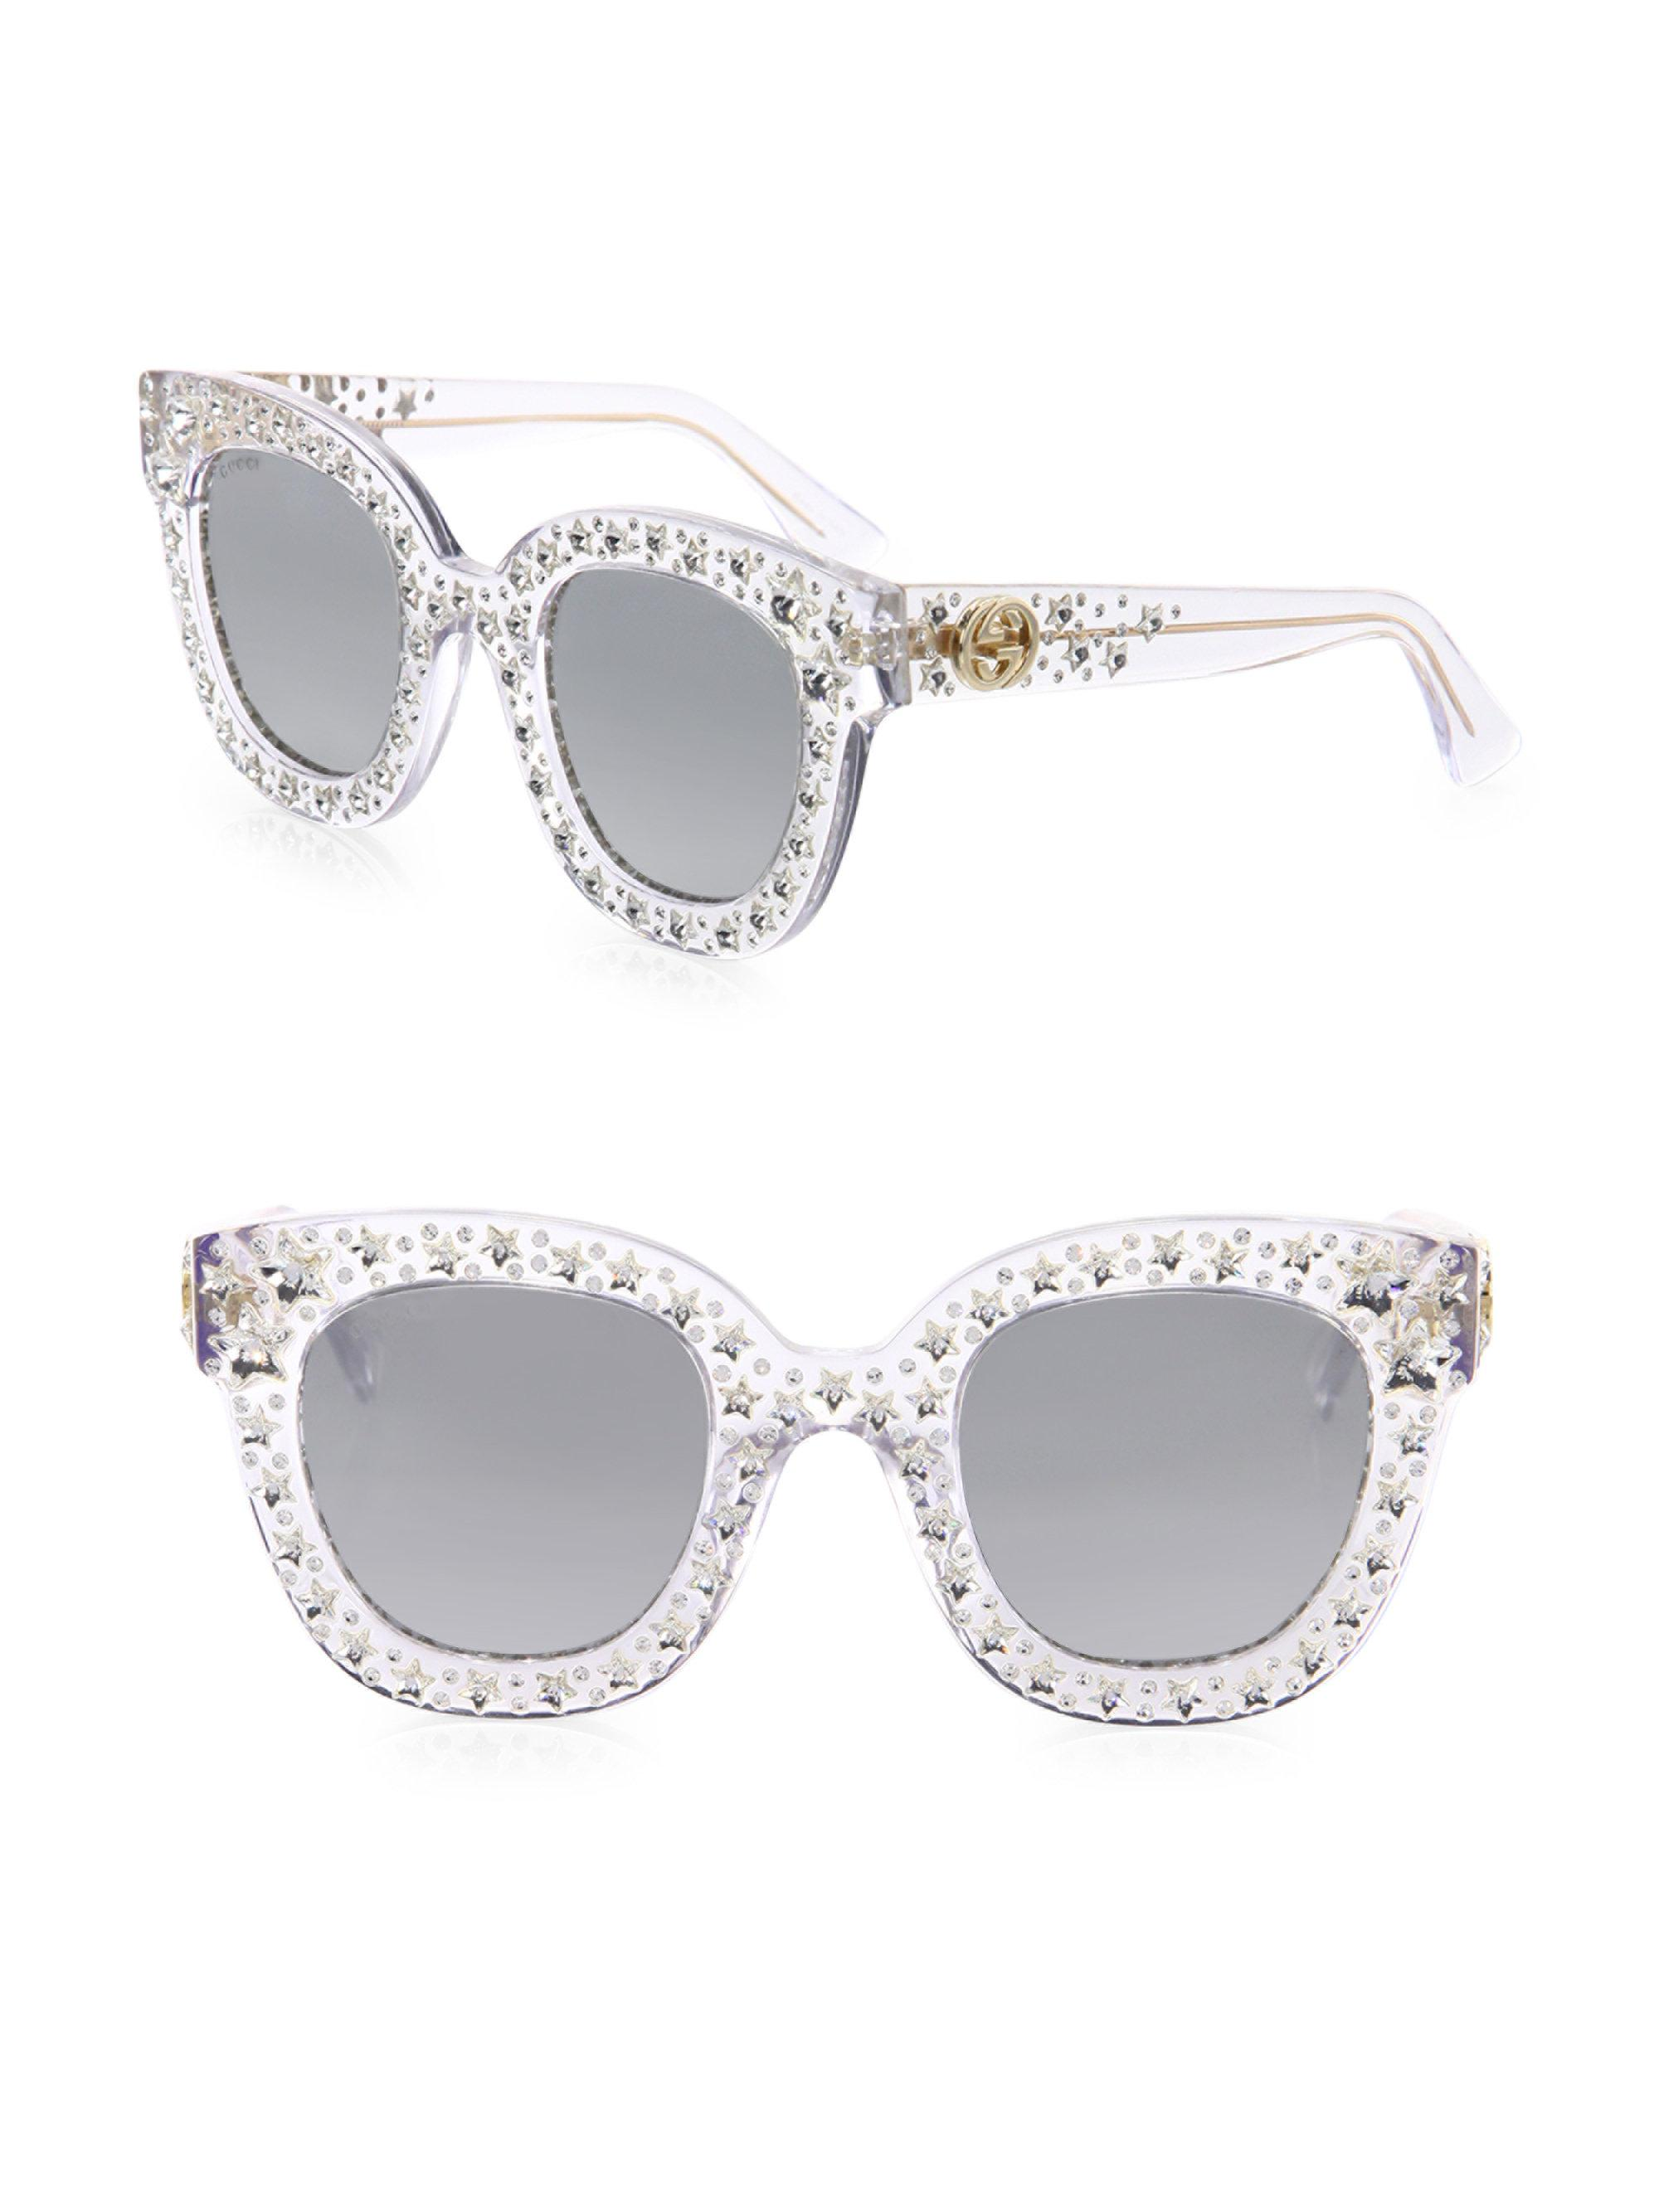 cfcfb6d6f0 Lyst - Gucci Oversize Crystal Star Mirrored Square Sunglasses in ...